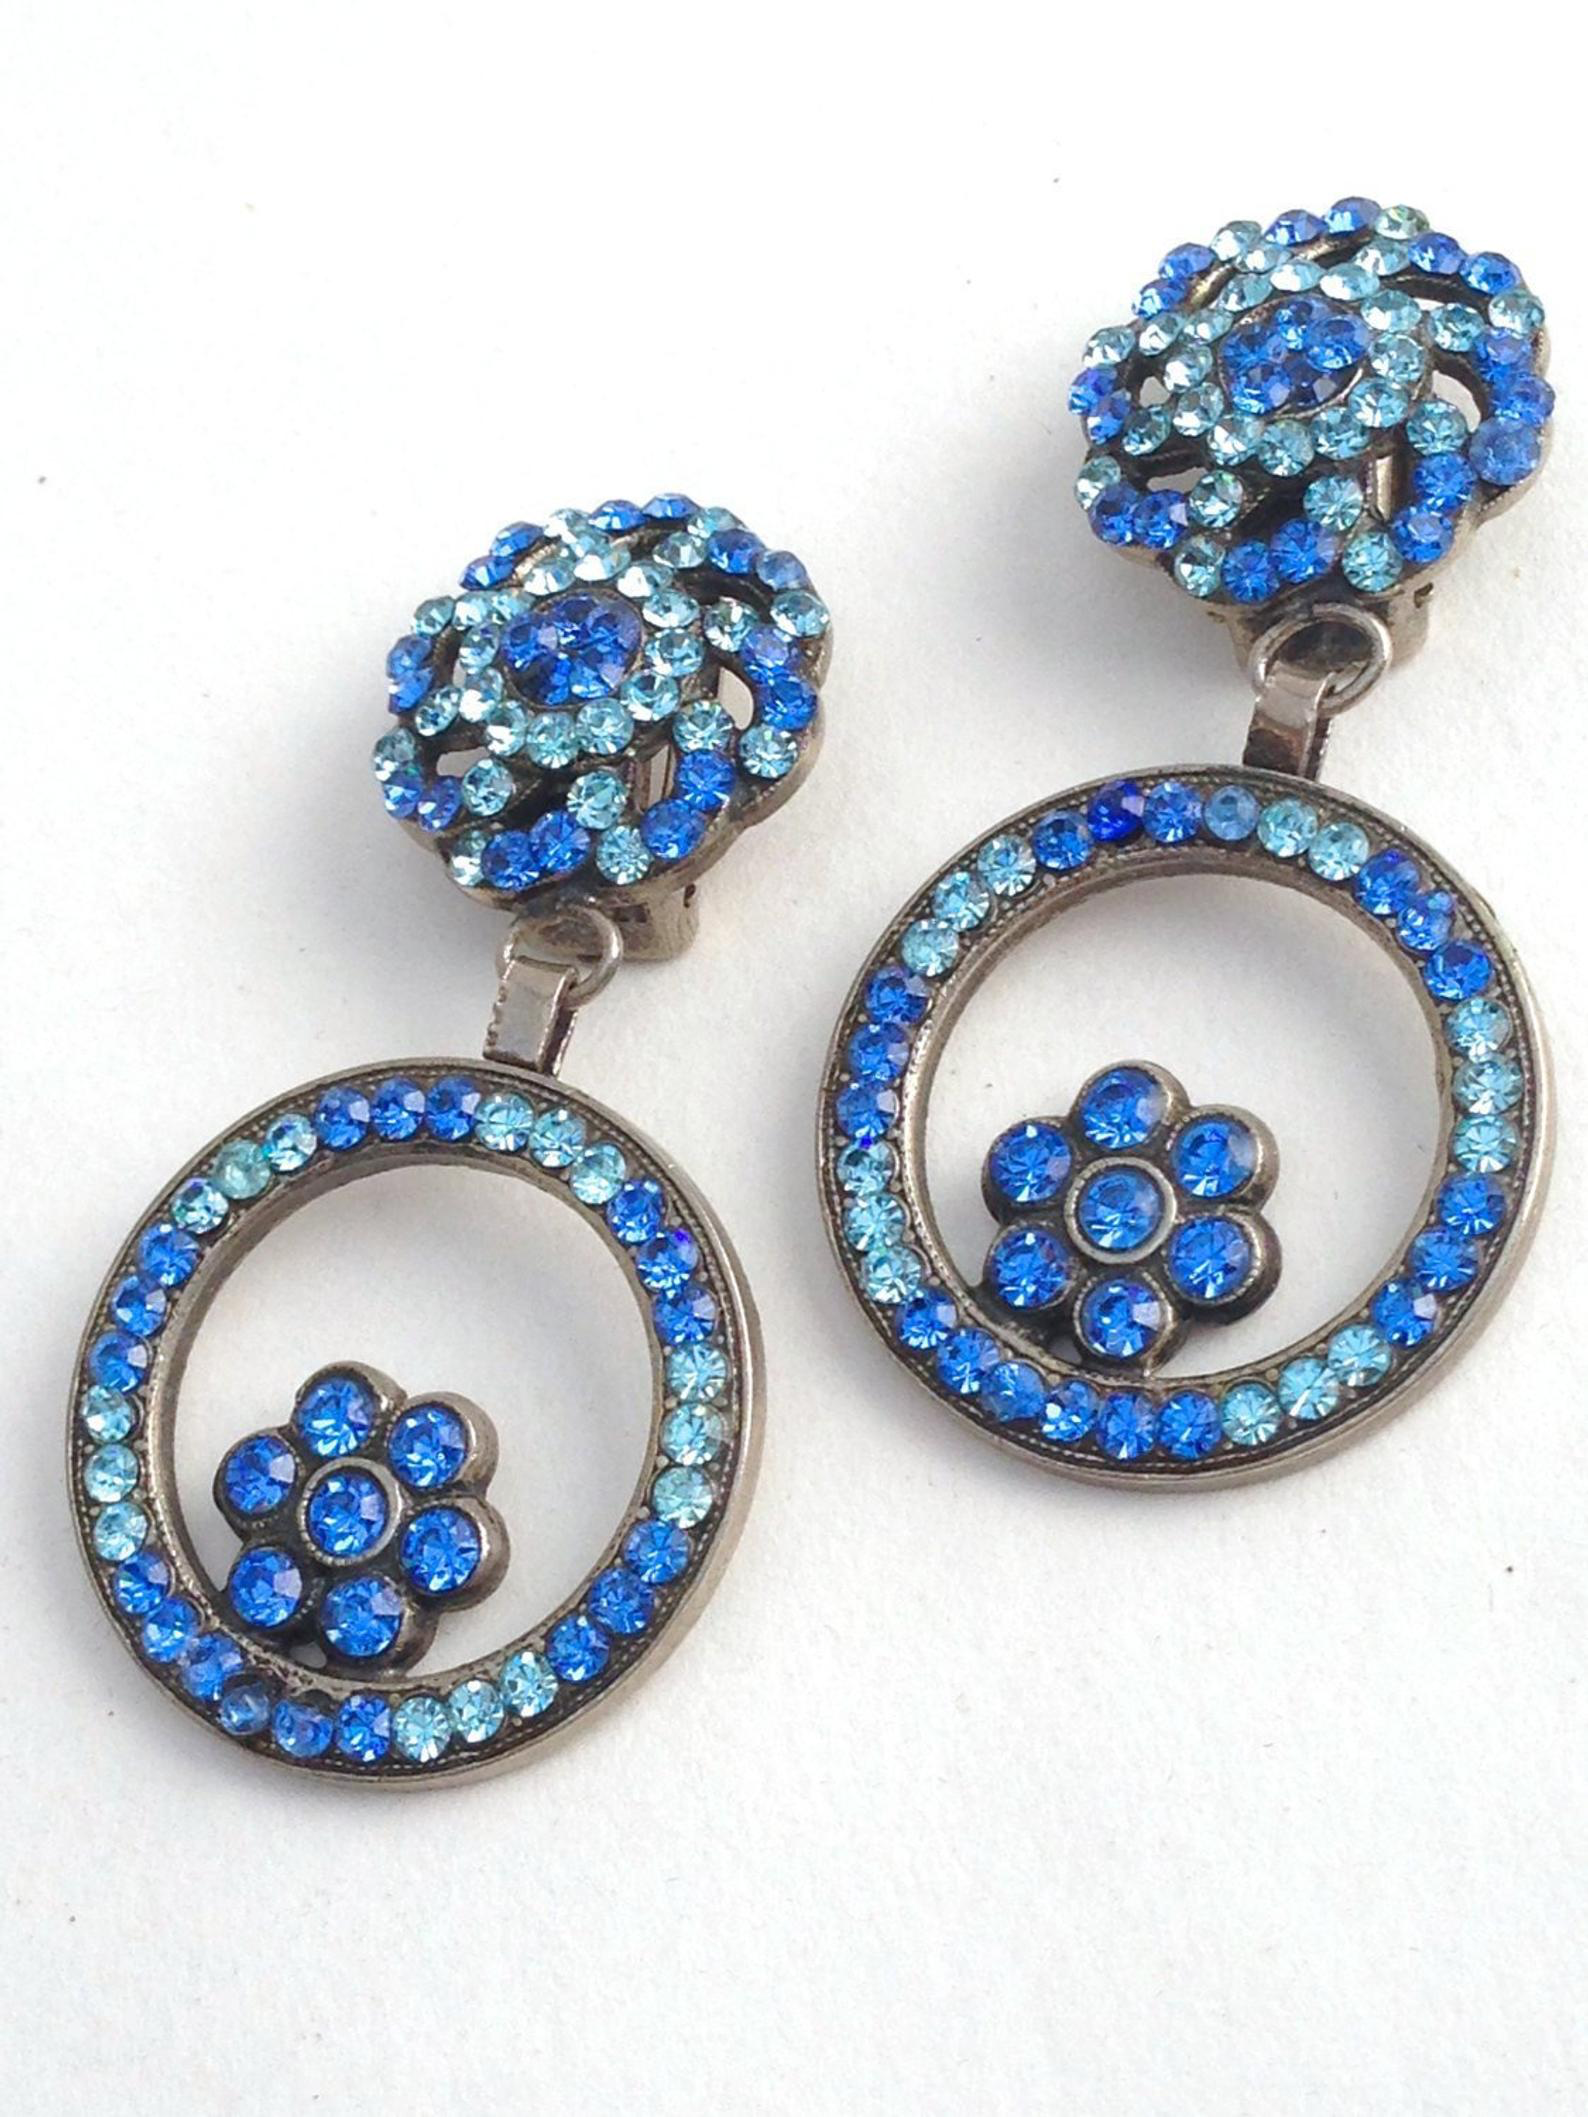 Italian Vintage Rhinestone Floral Earrings, Blue Vintage Crystal Rhinestone Clip On Earrings, Day to Evening, Holiday Gift #vintagerhinestone